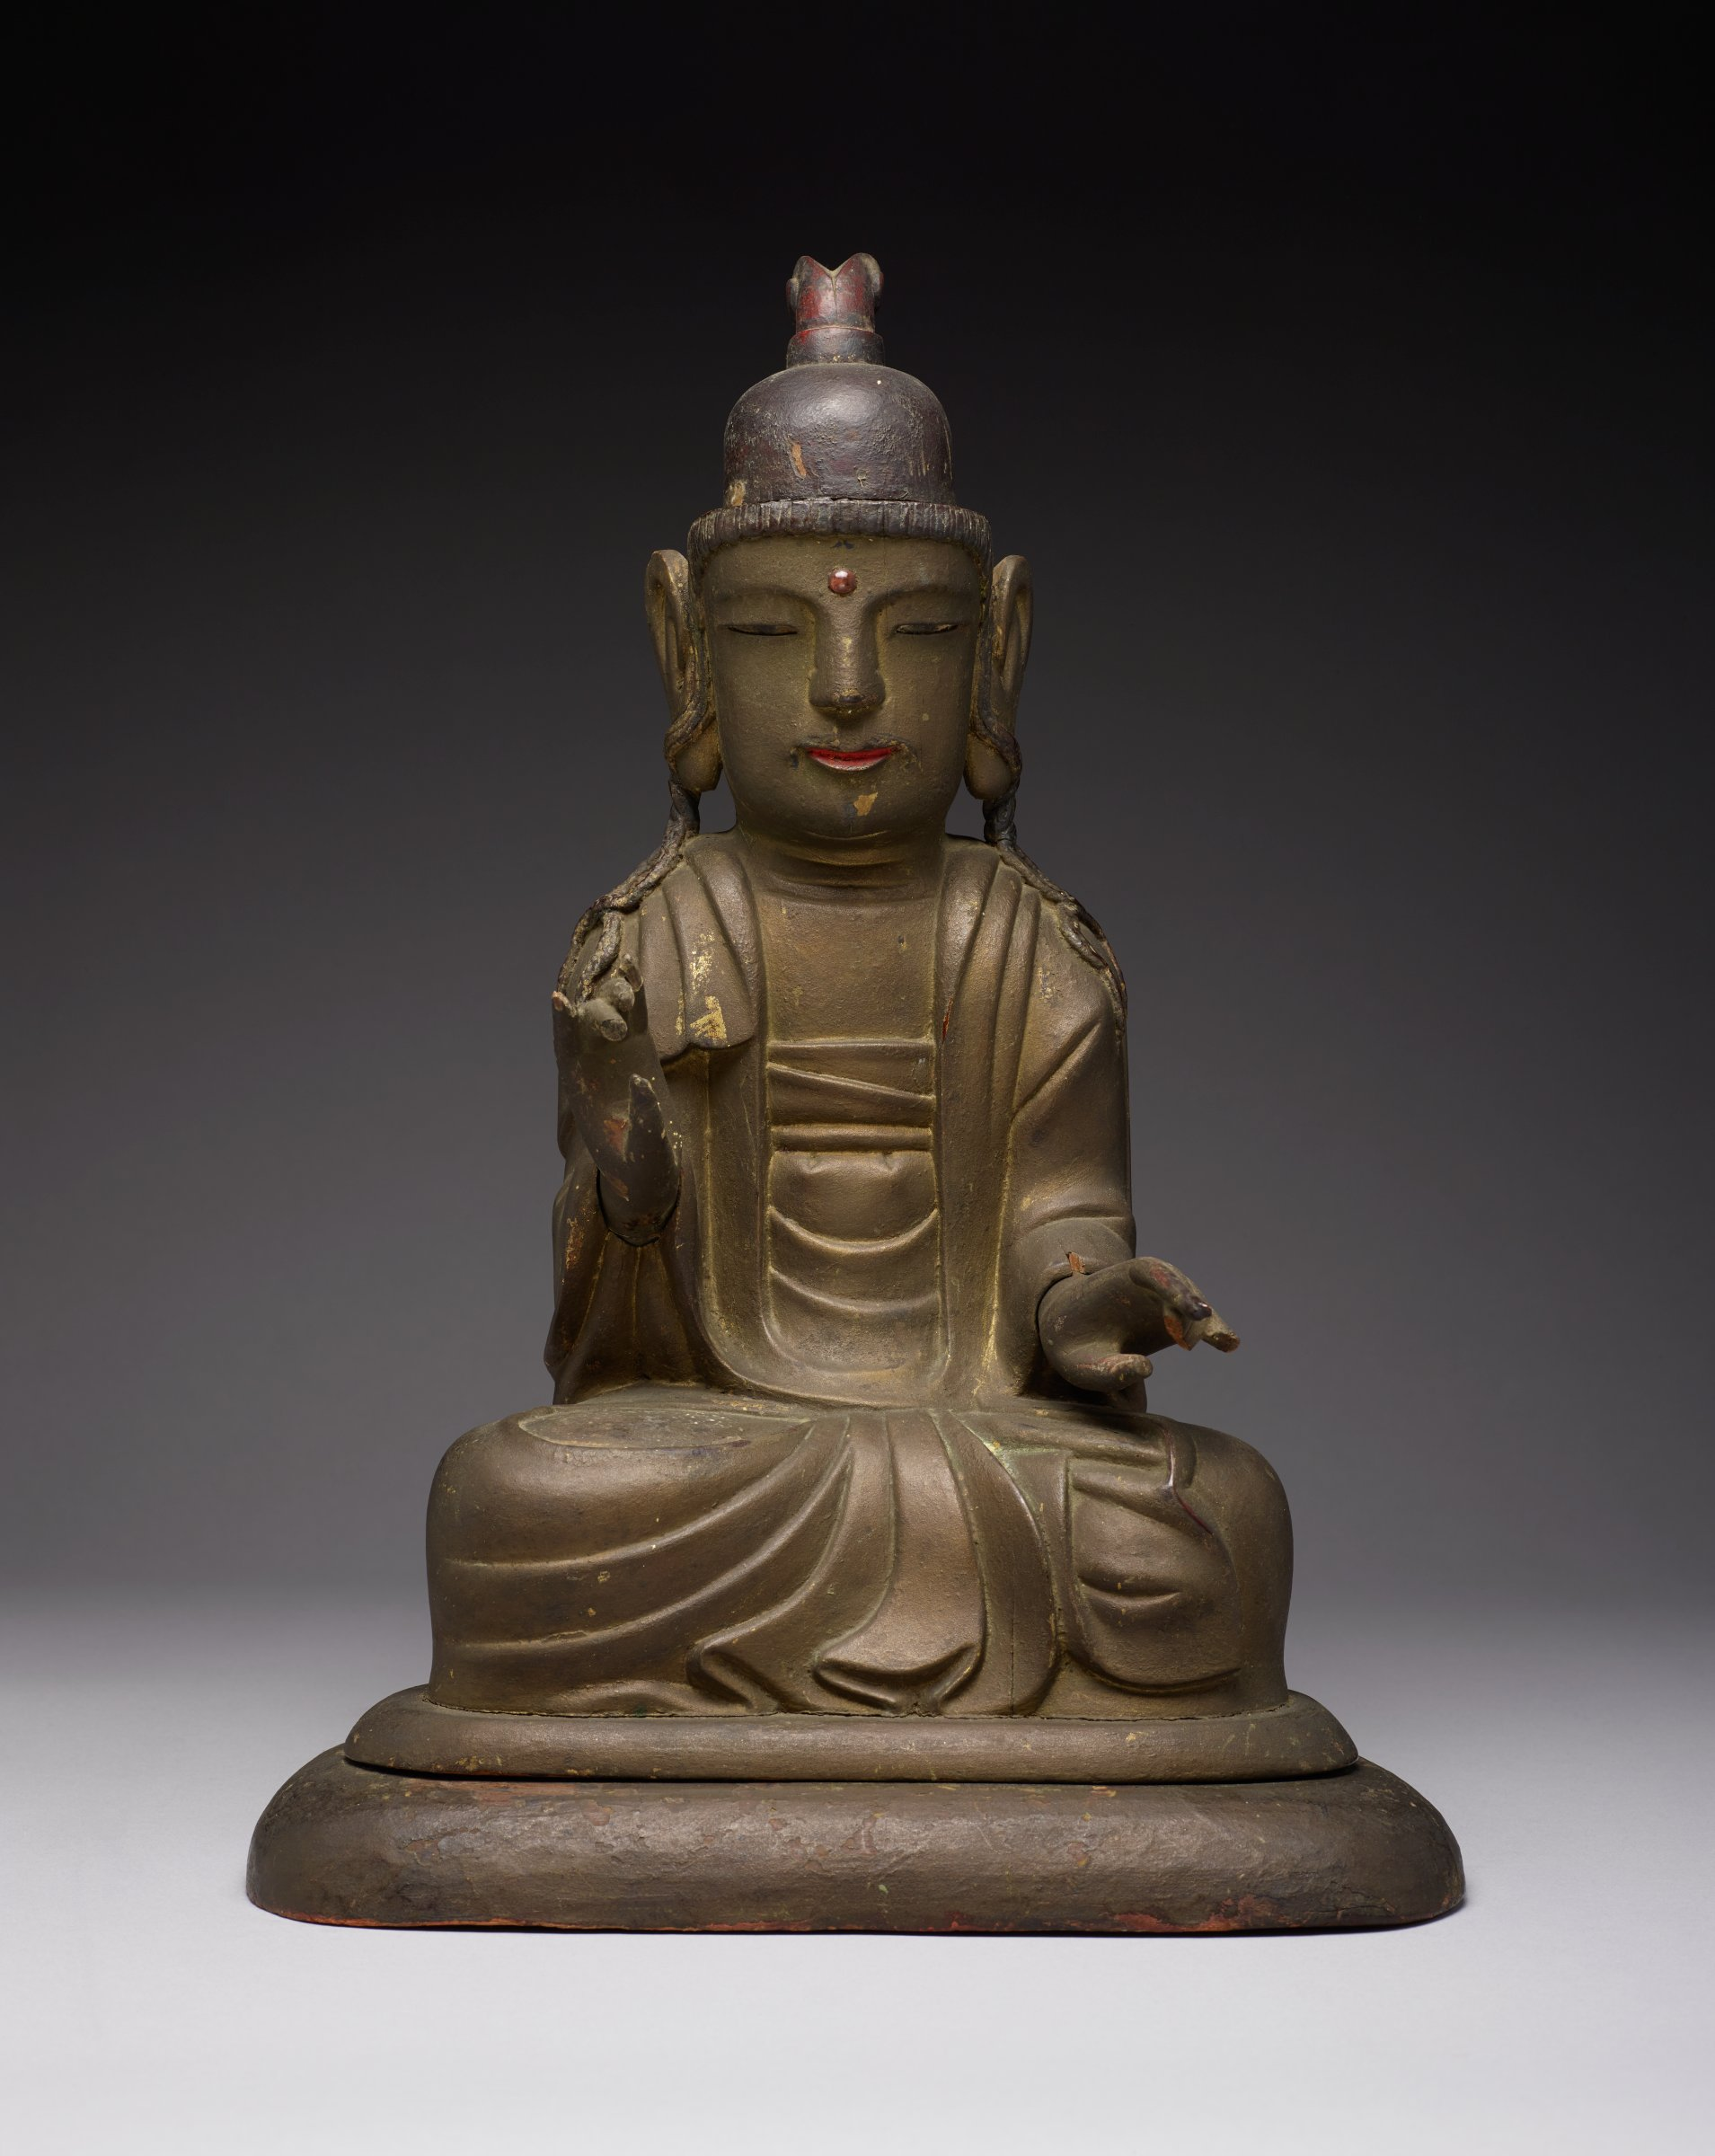 """As is typical statue's hands are removable. Its base is also removable. Consecration contents appear in tact (visible through hold in sealing base. Hand-made metal nails seal the base possibly also with bamboo nails.Statue alone: H: 15.75, W: 10 D: 8"""" Base alonge: H:1"""" x W: 12"""" D: 8.5"""""""